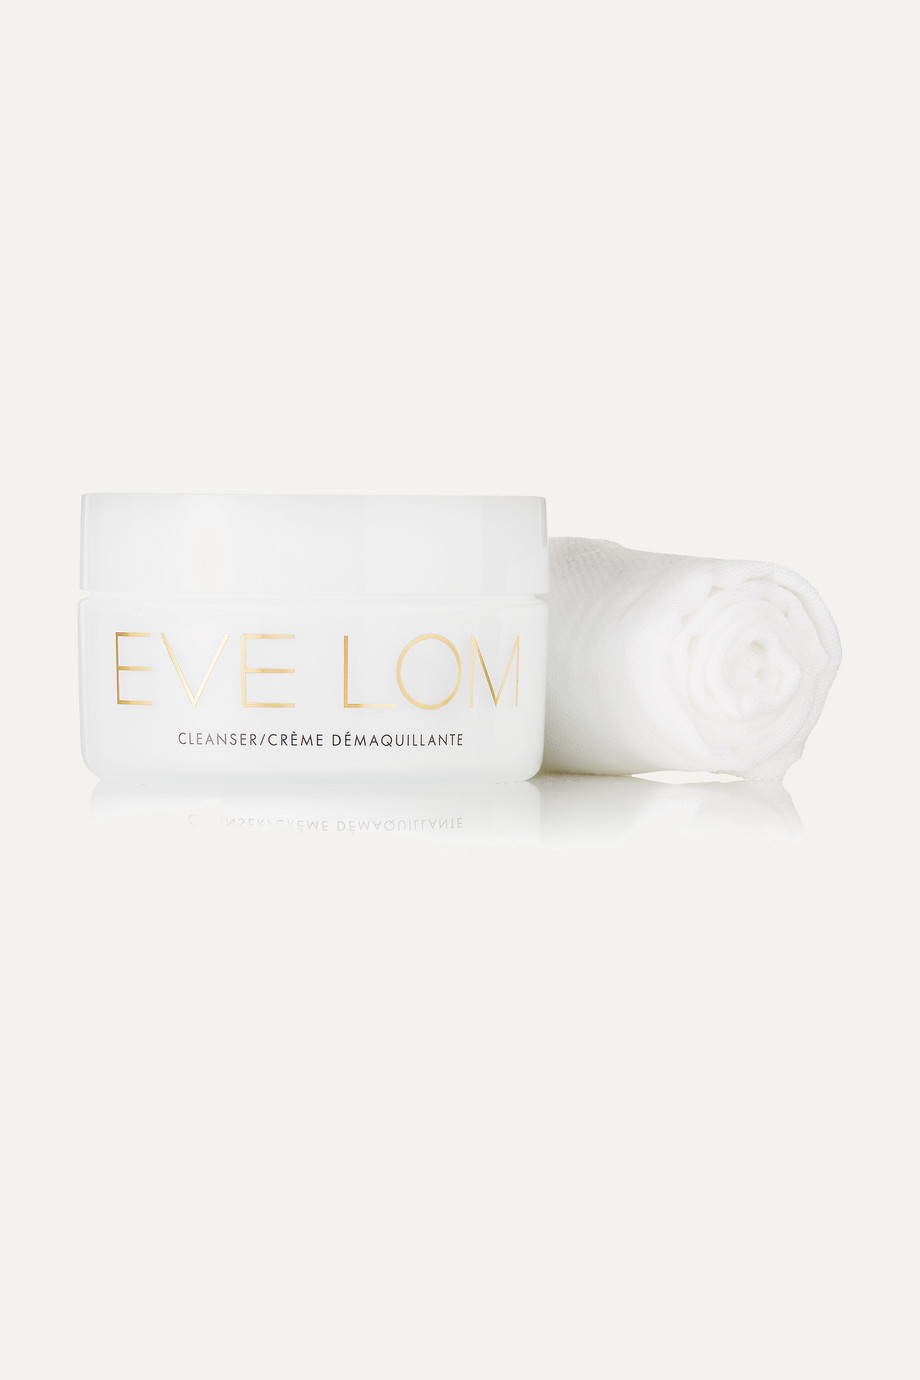 Eve Lom Cleanser, 50ml